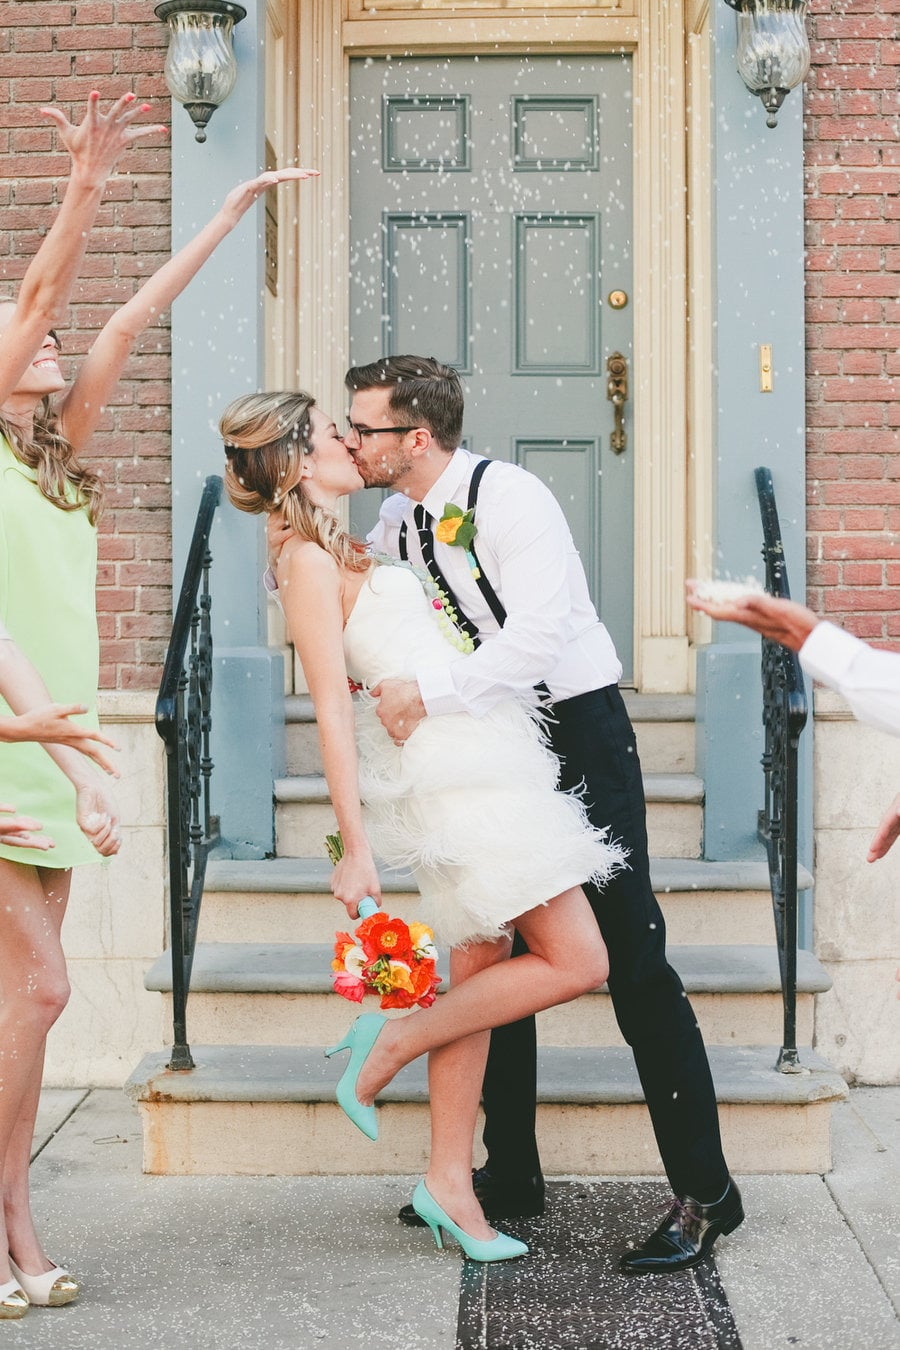 Just-Married Kiss